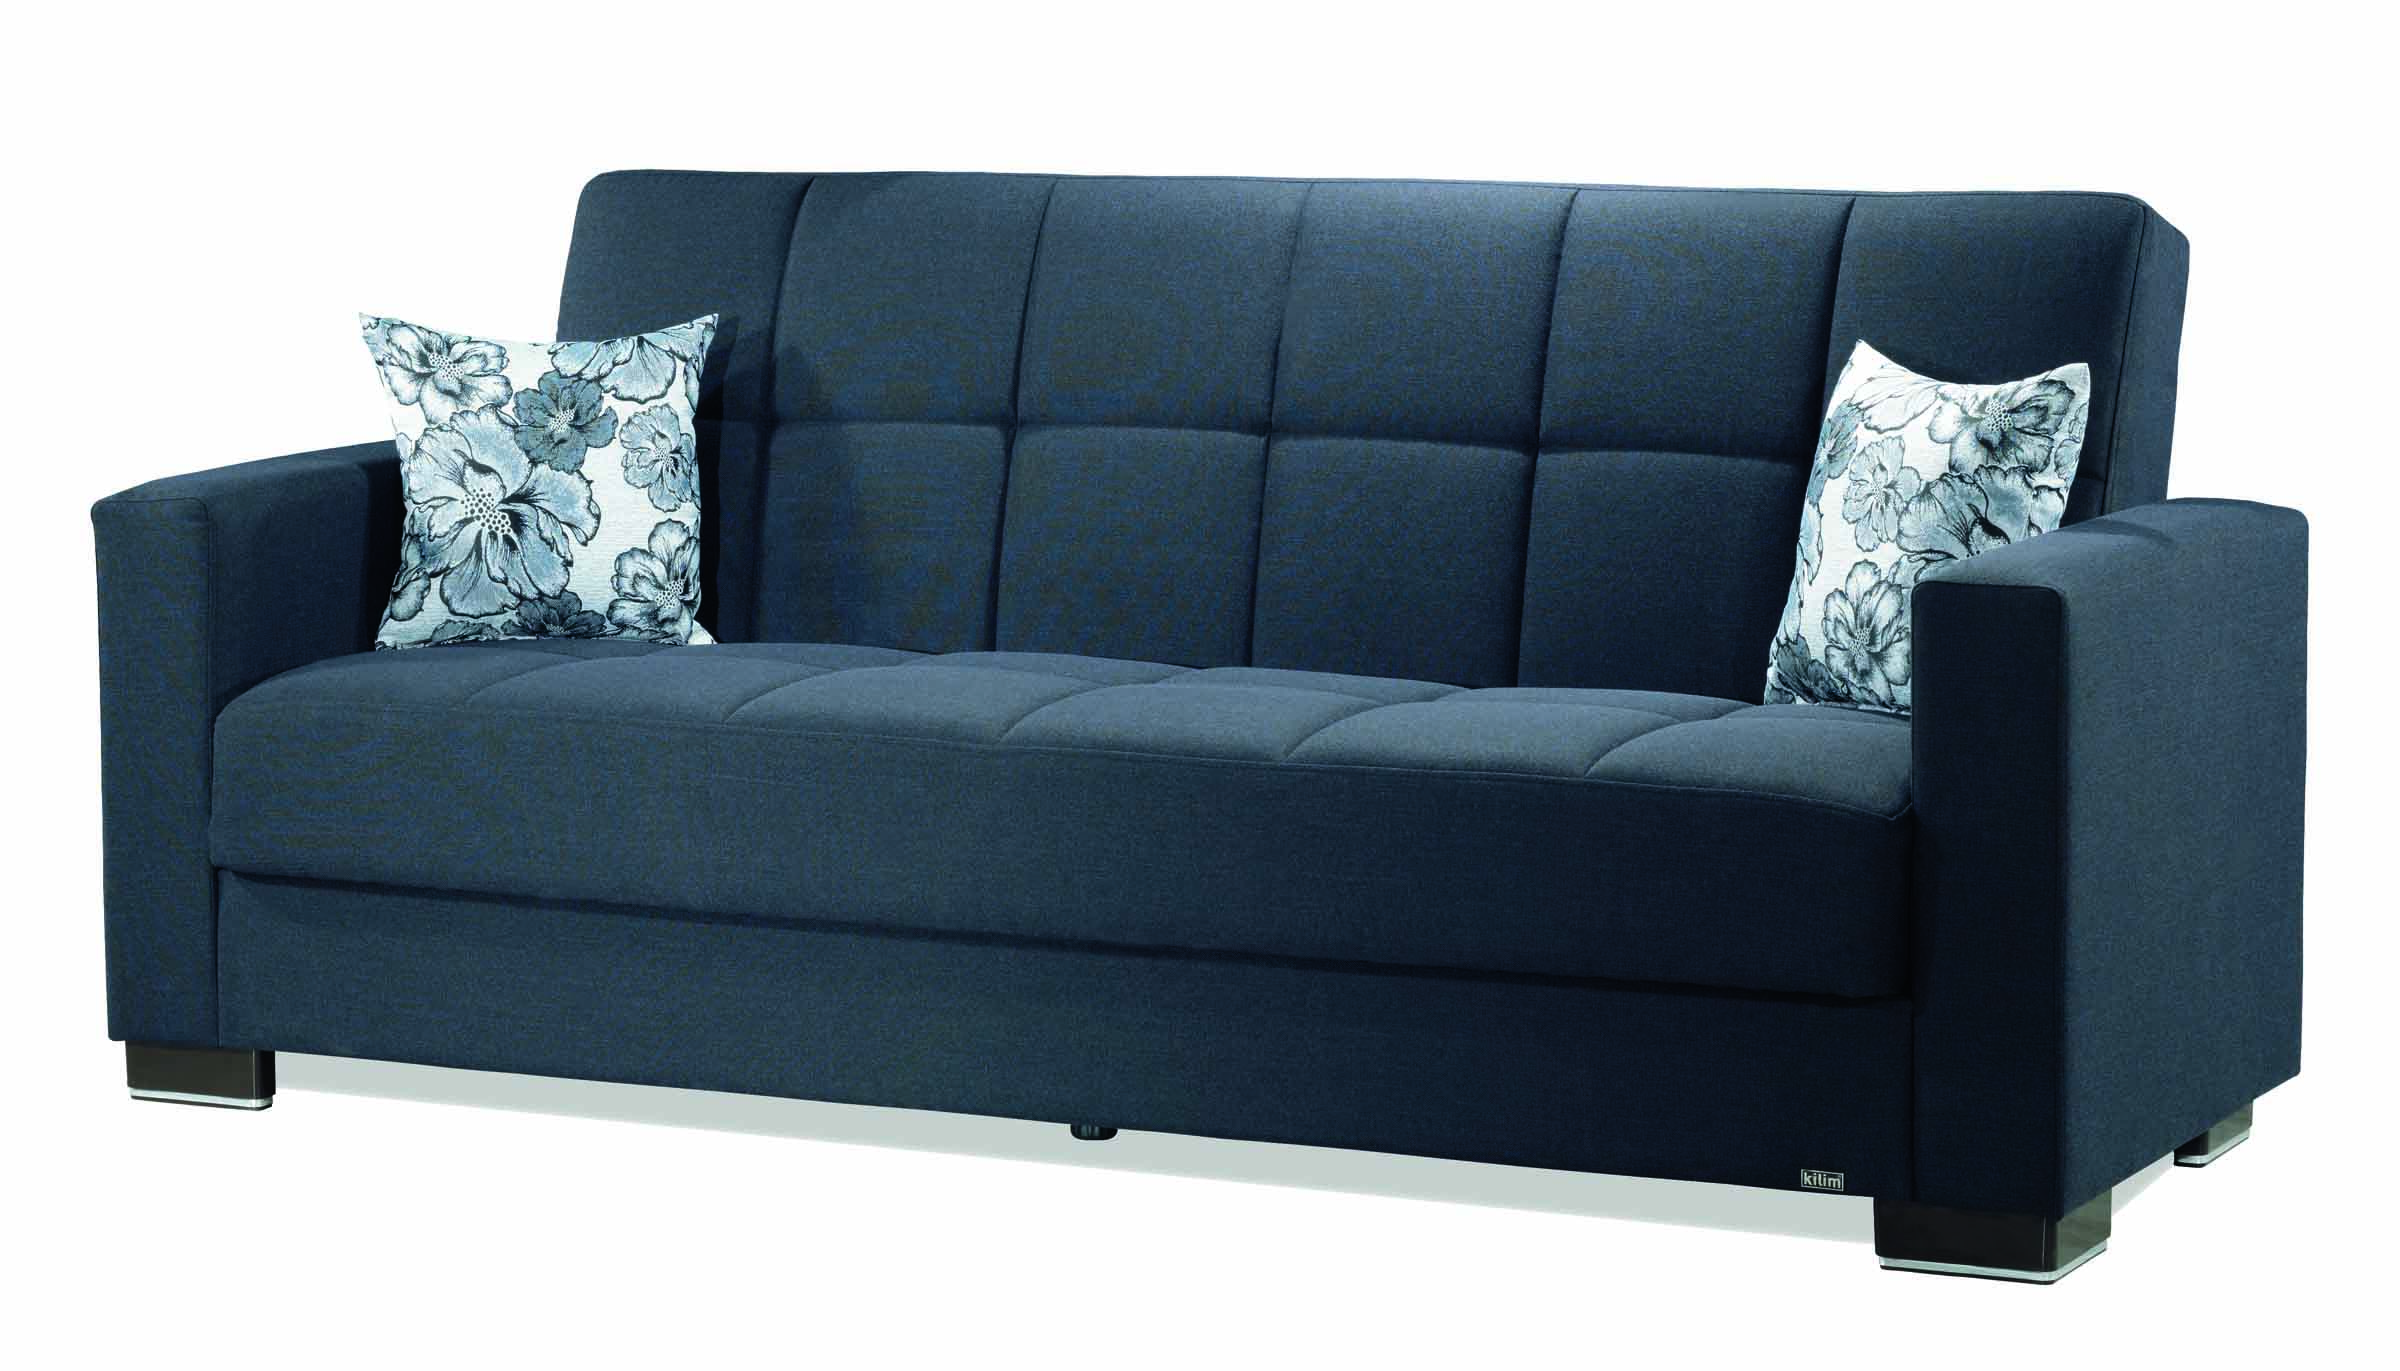 Casamode Armada Denim Dark Blue Fabric Sofa | The Classy Home